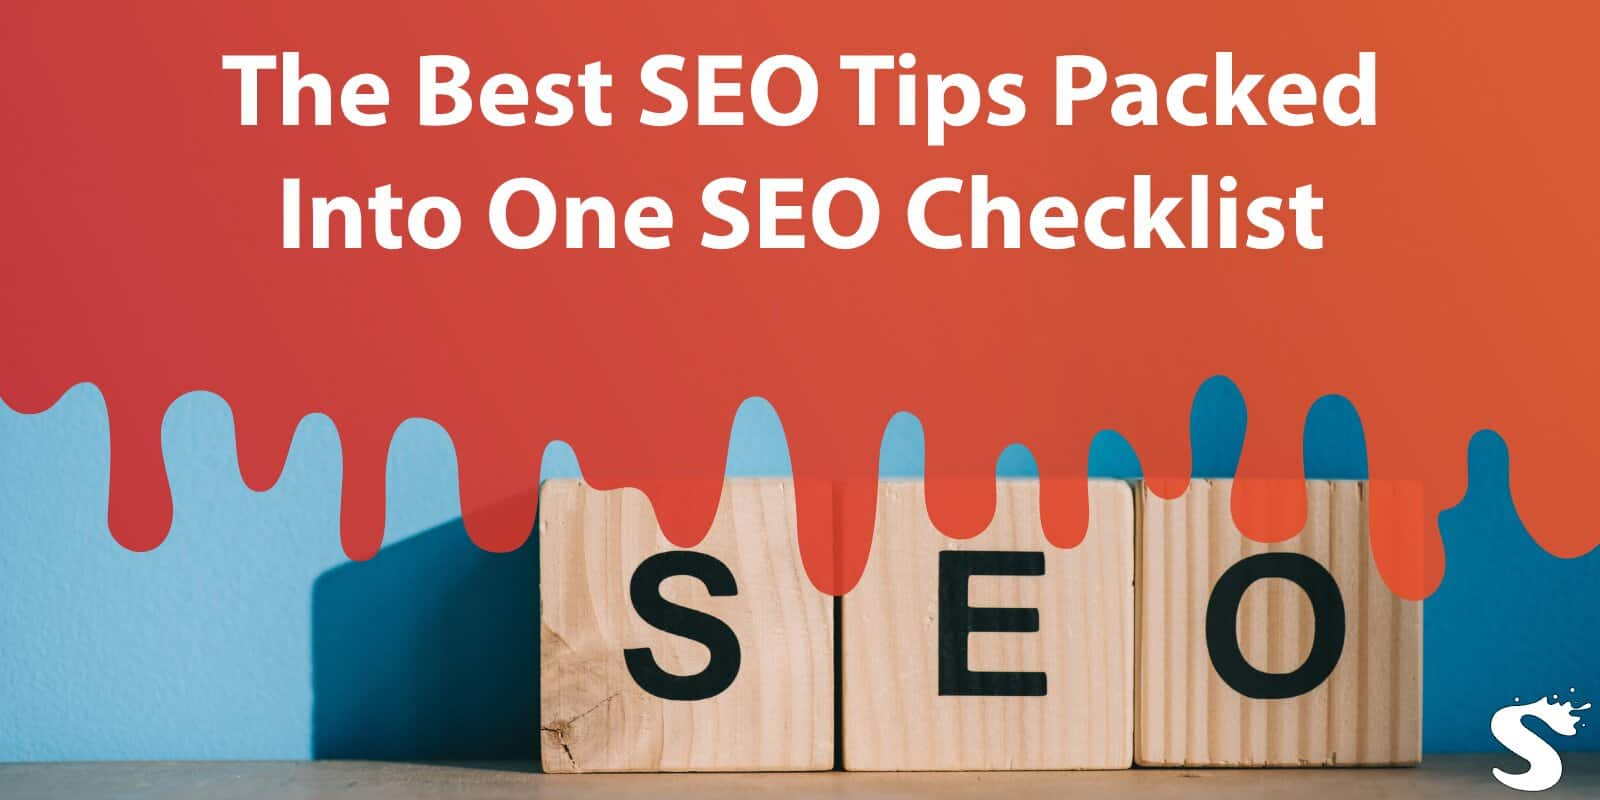 The Best SEO Tips Packed Into One SEO Checklist